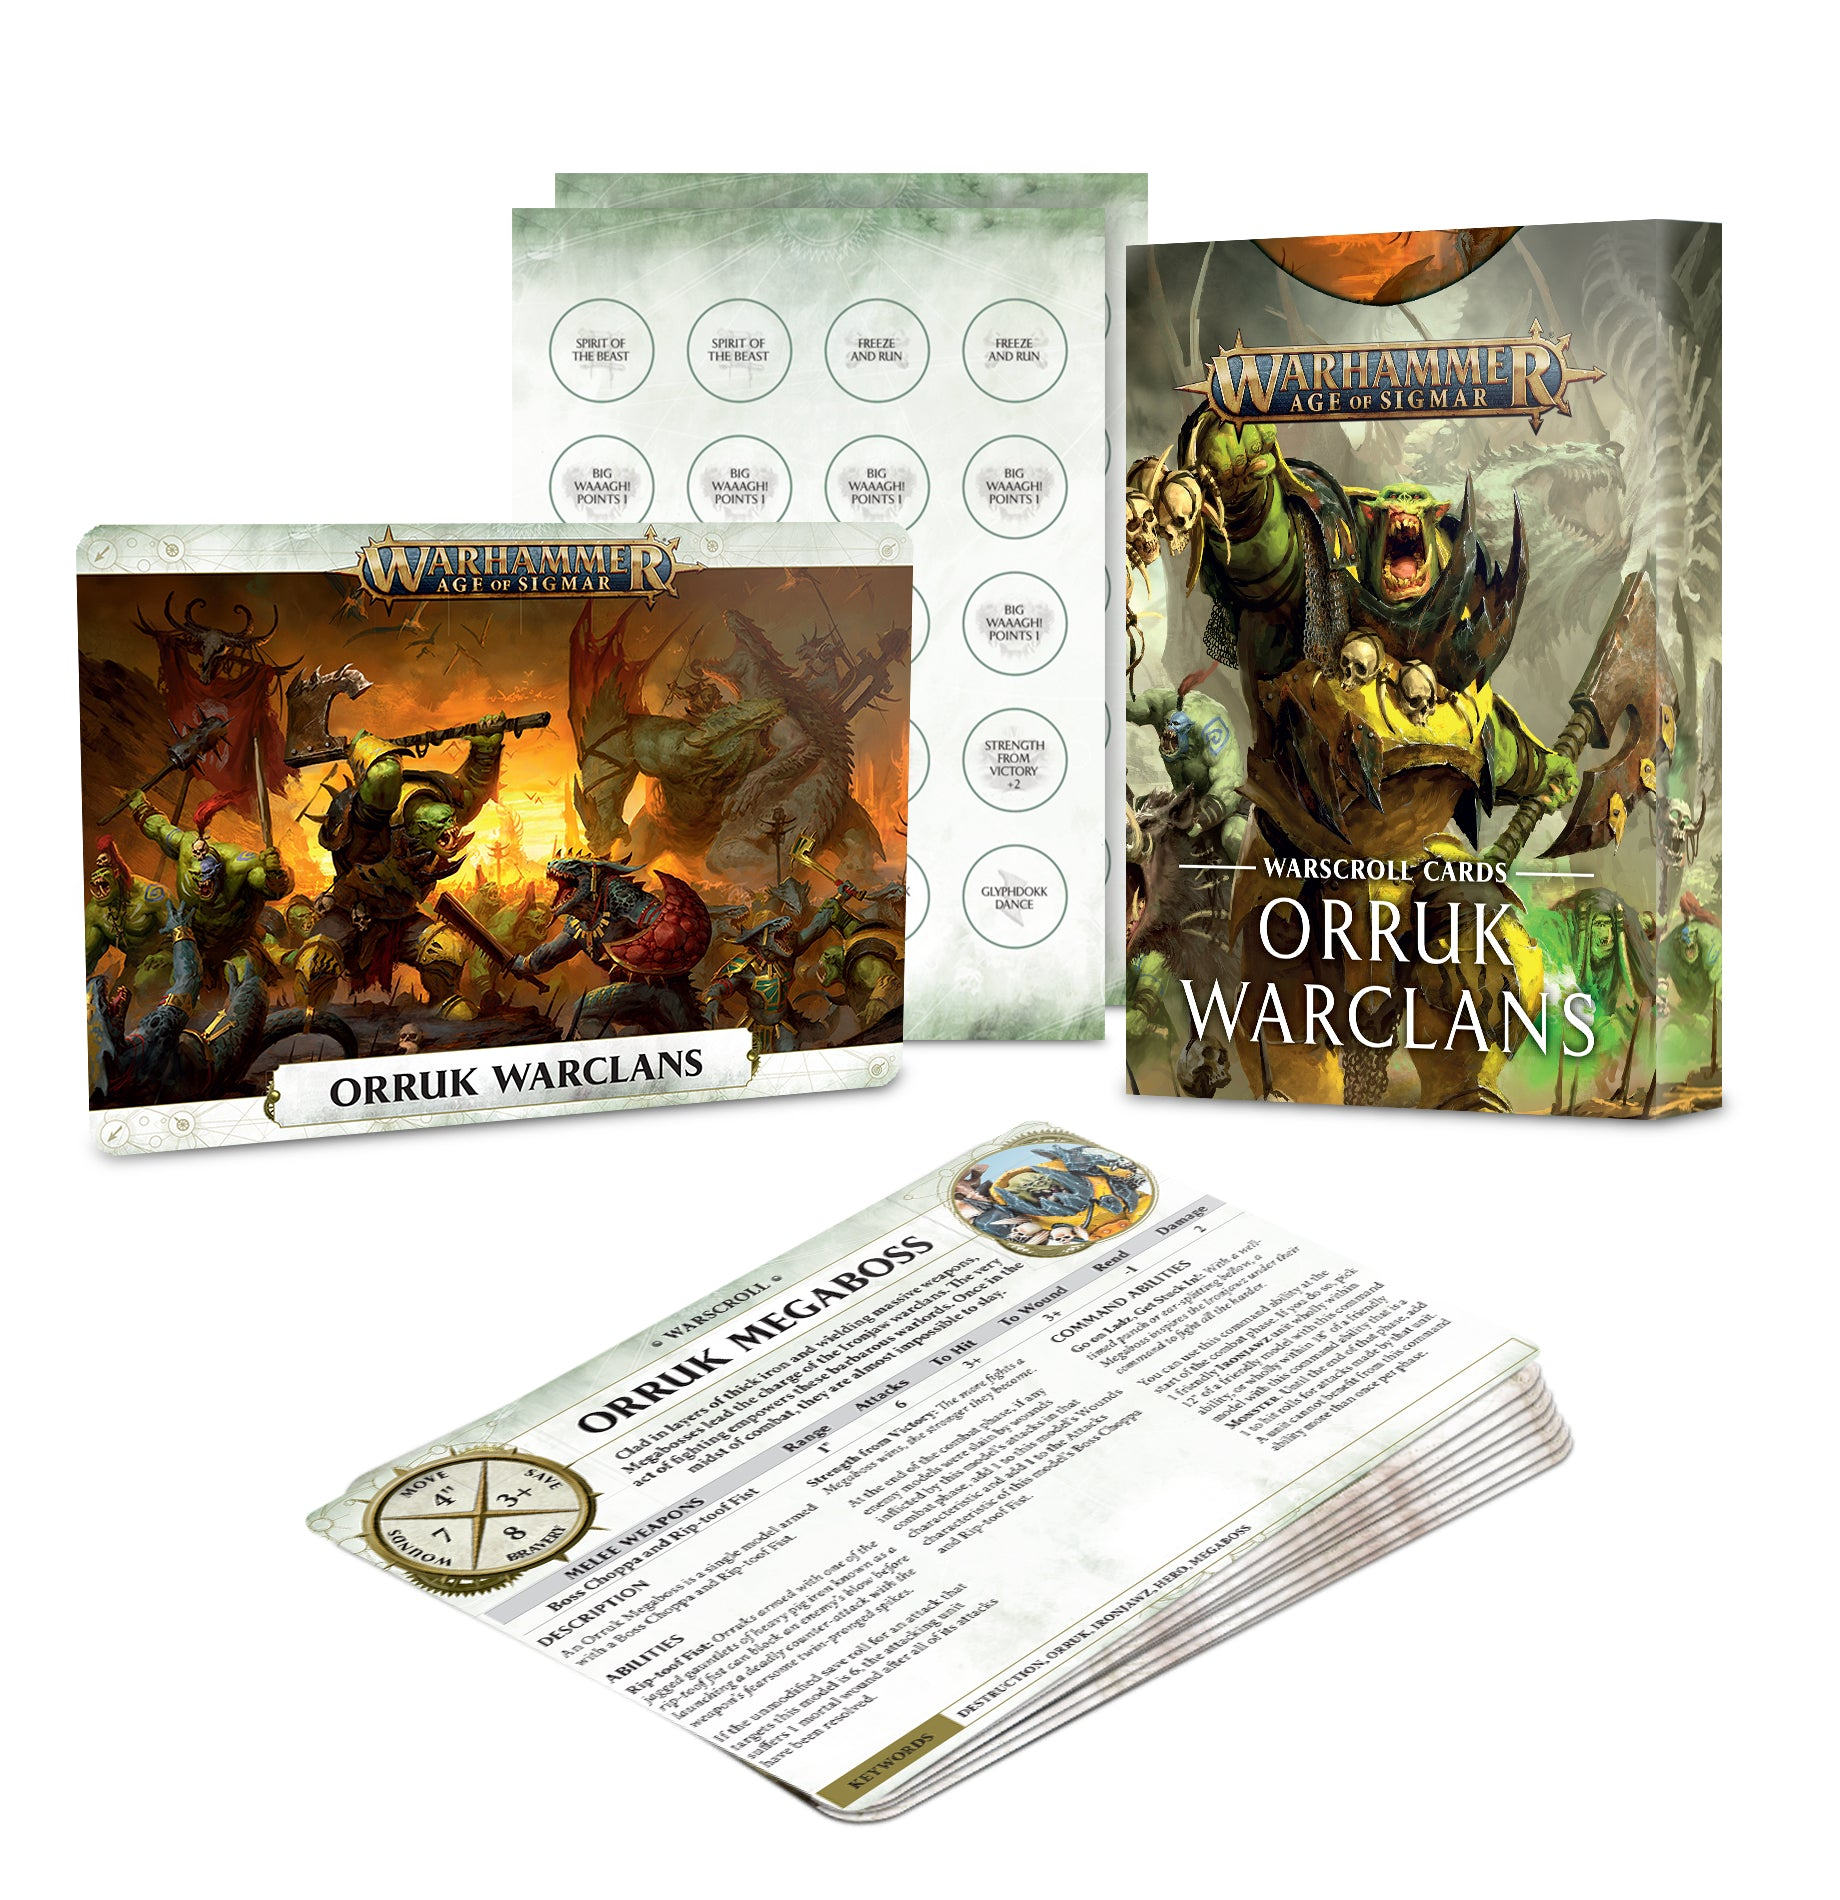 Warscroll Cards: Orruk Warclans | Gamers Grove